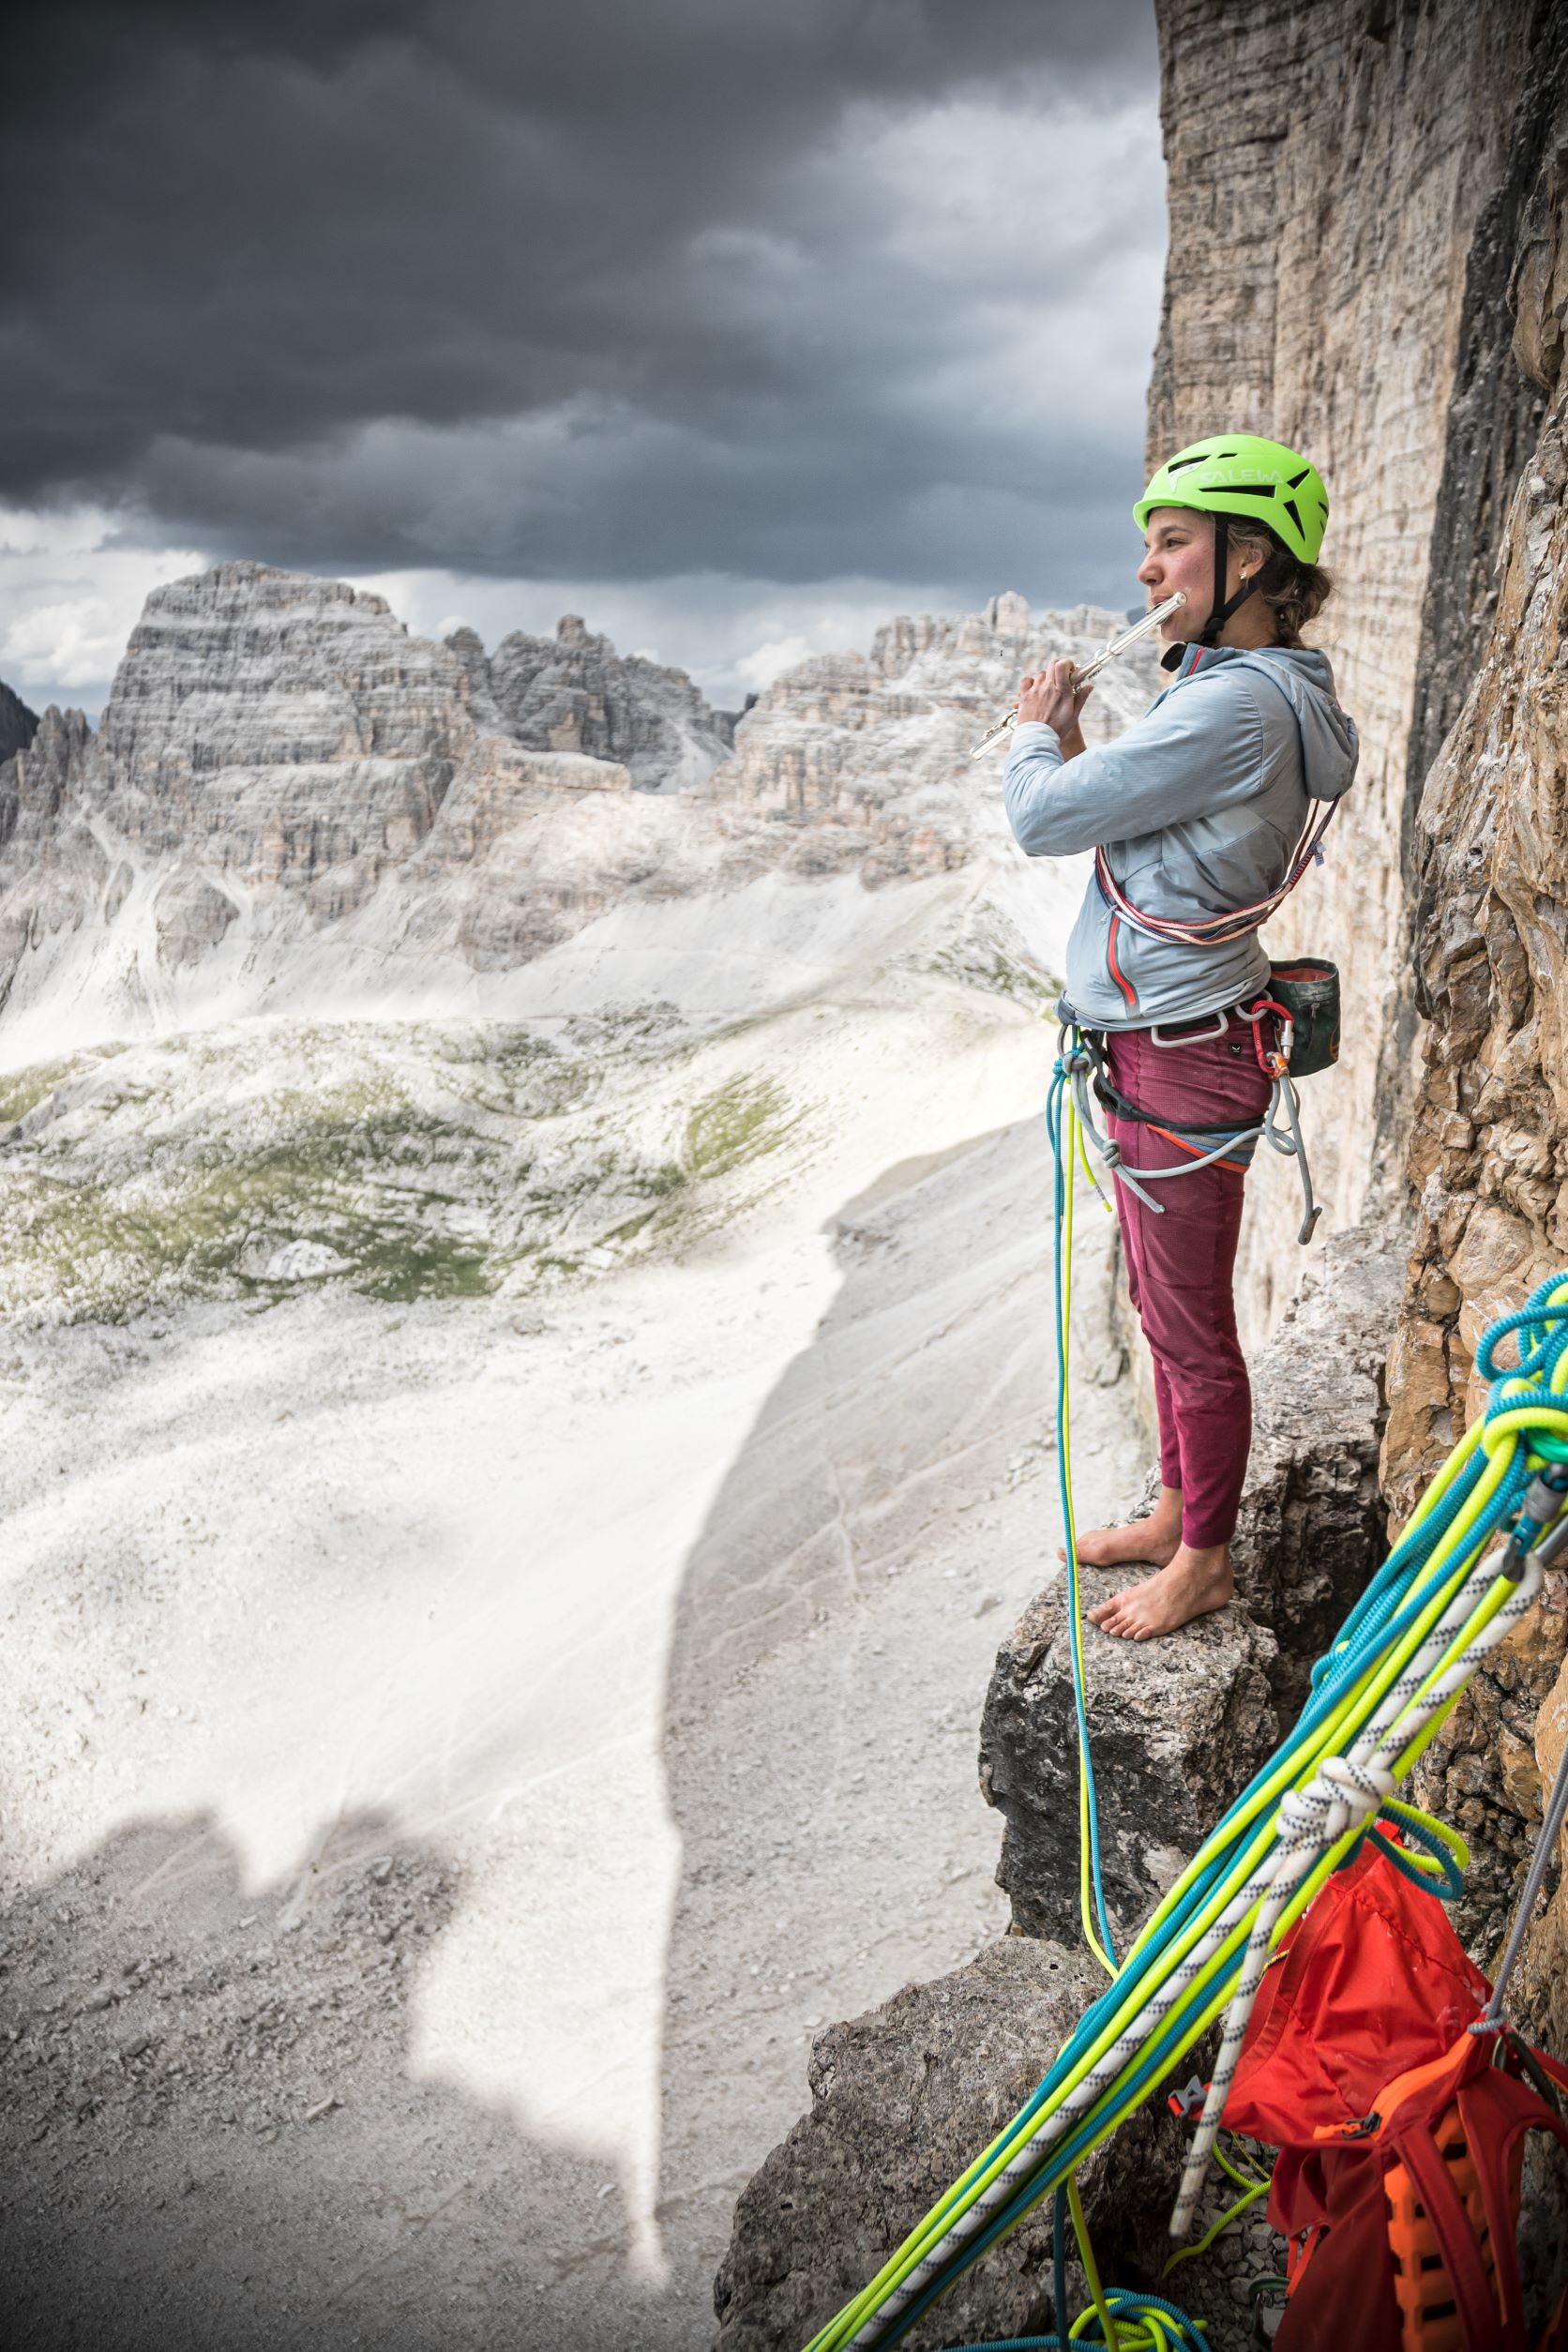 A rock climber plays the flute while standing on a belay ledge in the Dolomites